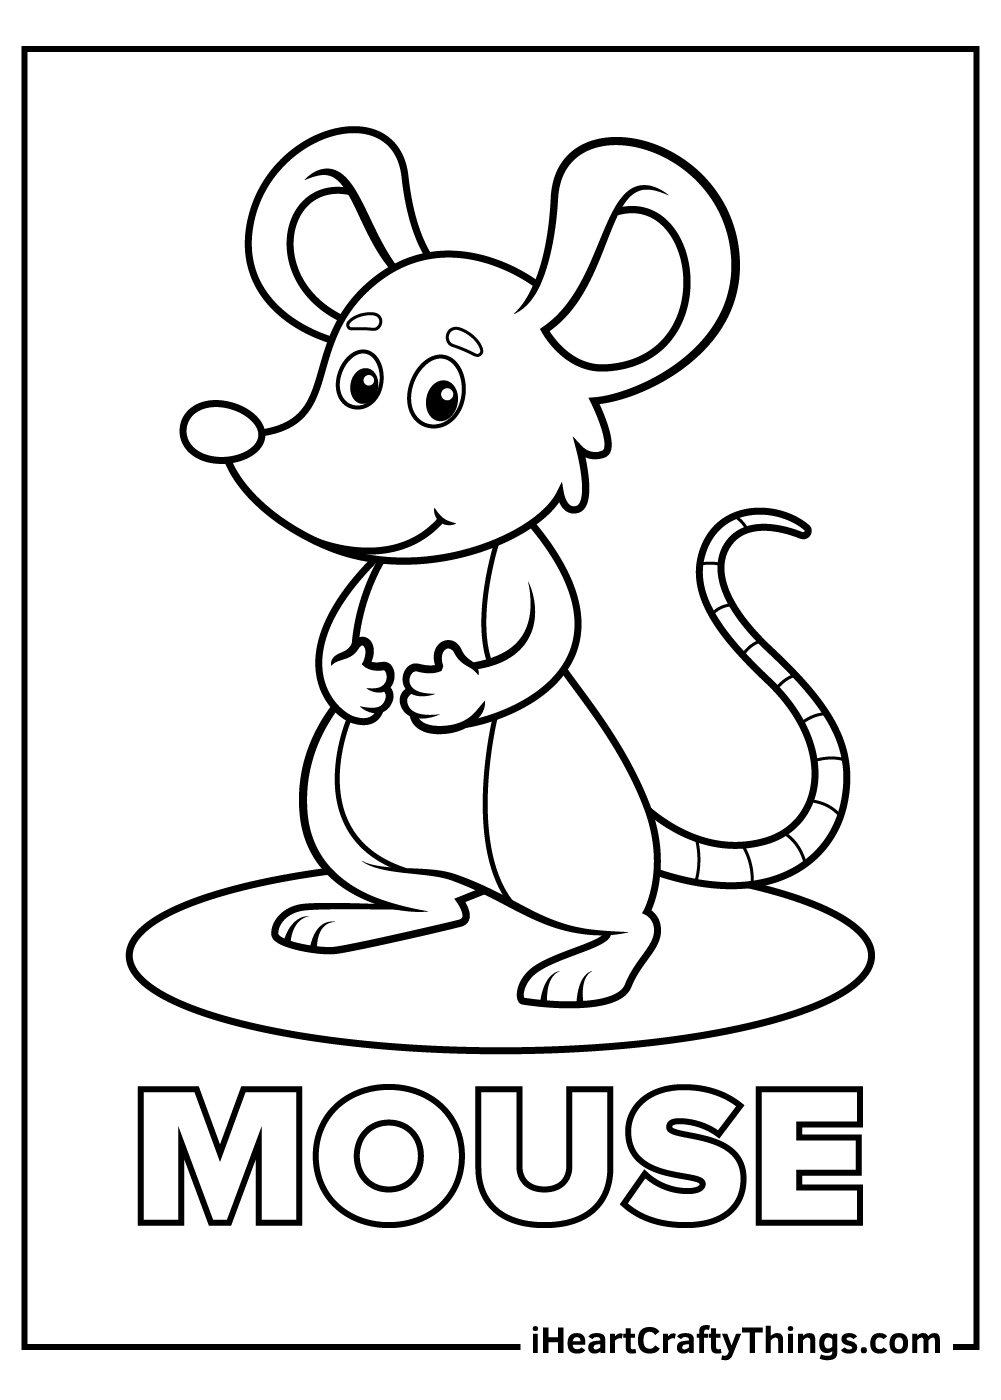 3 blind mice coloring pages